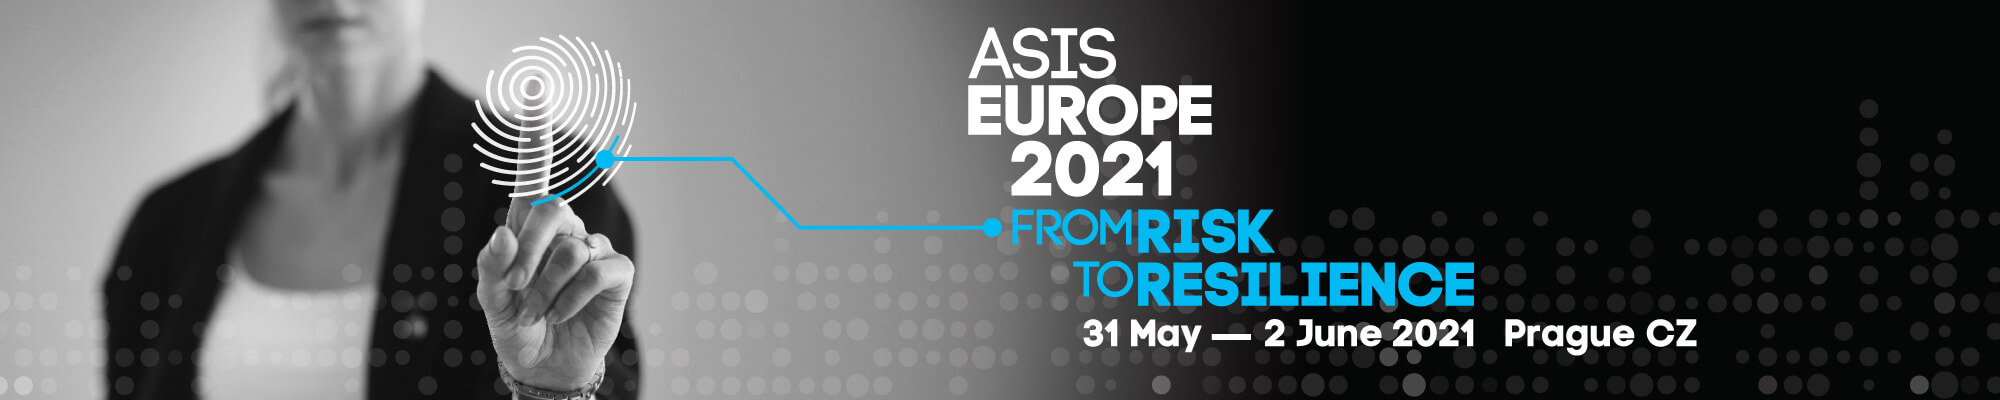 ASIS Europe - 1-3 March 2021